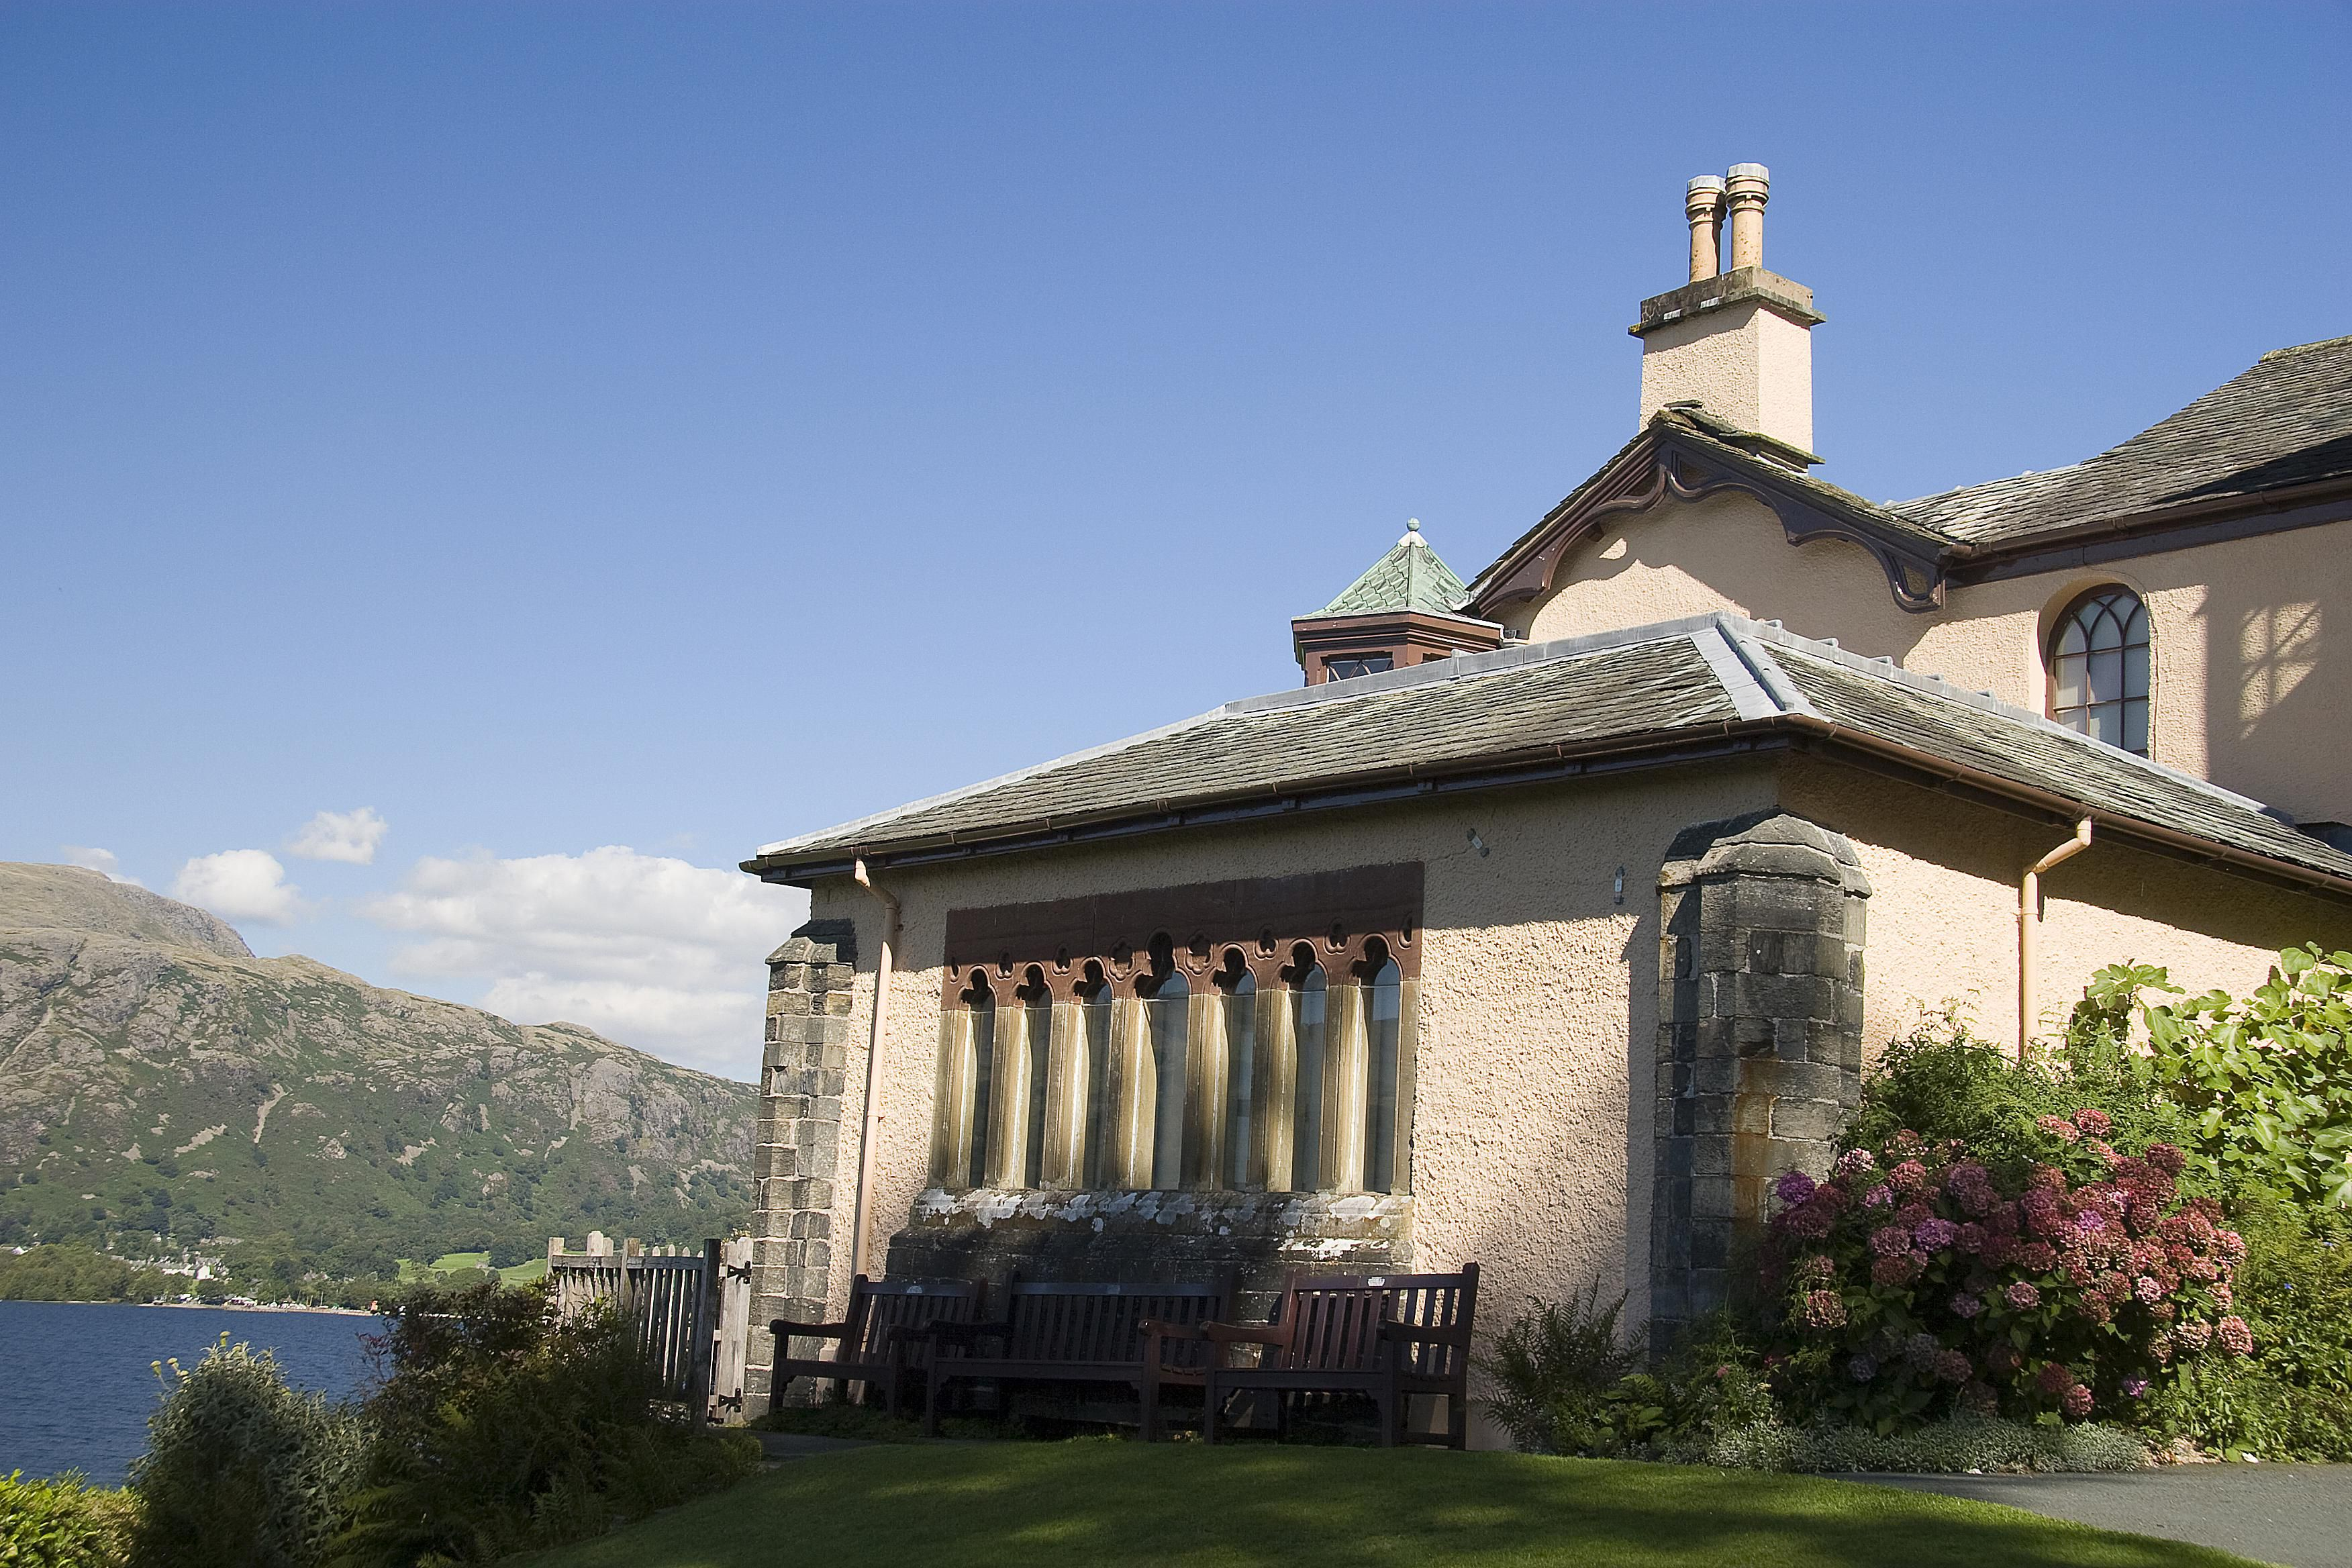 John Ruskin's Lake District home called Brantwood, at Coniston, Cumbria in England